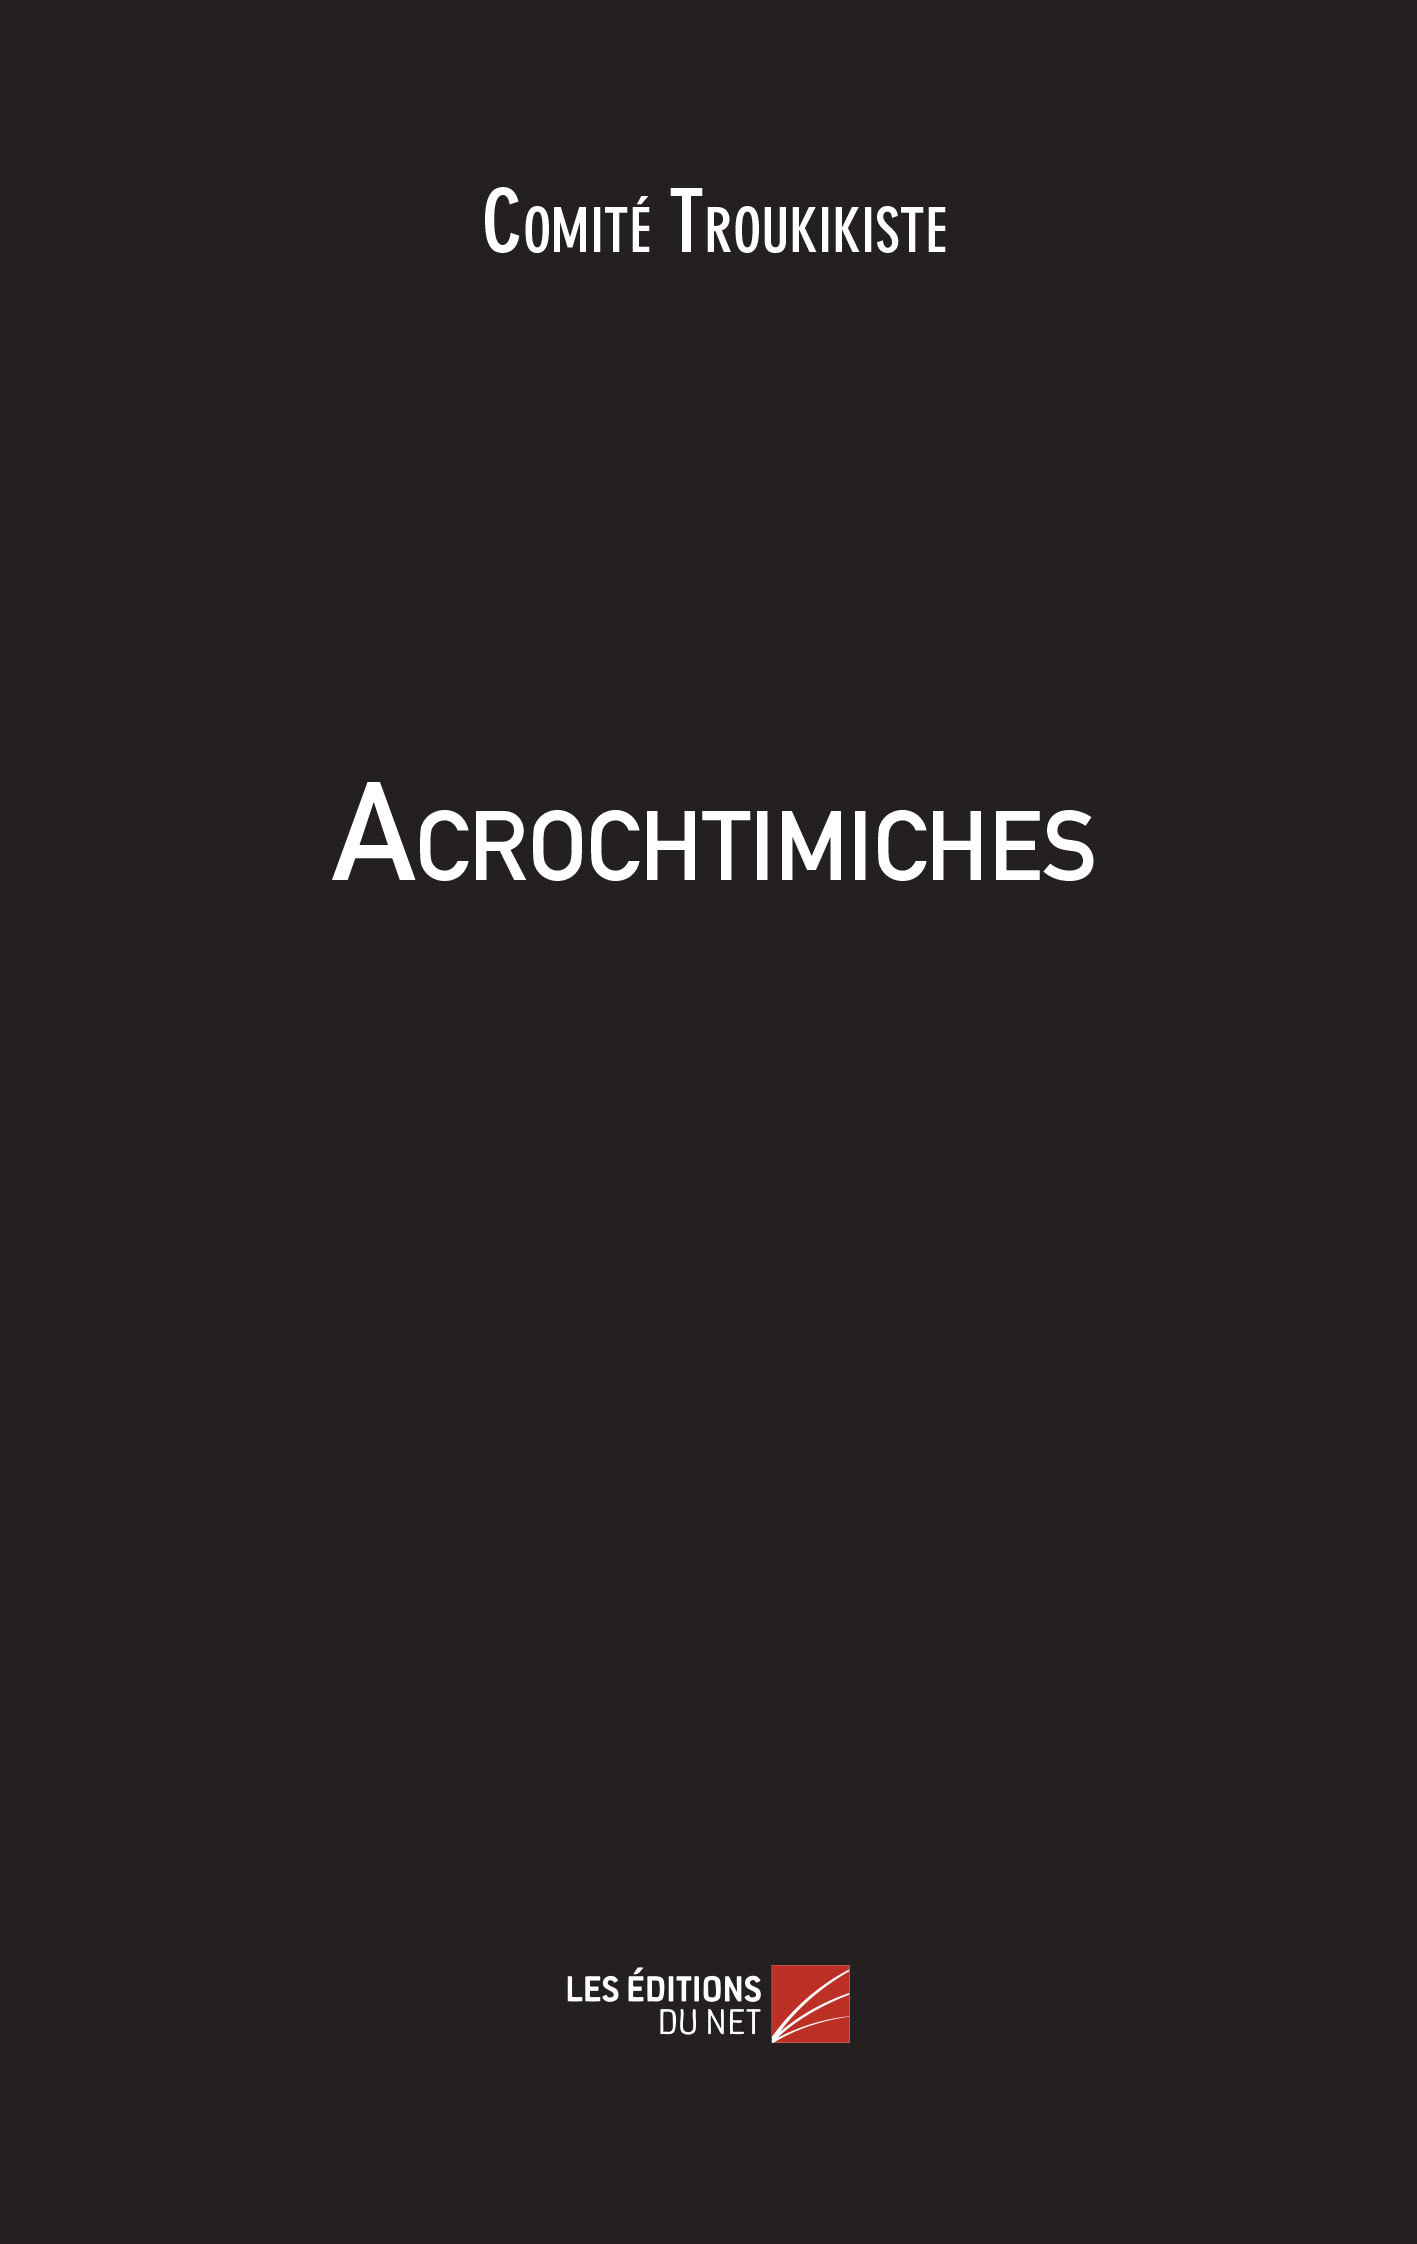 ACROCHTIMICHES